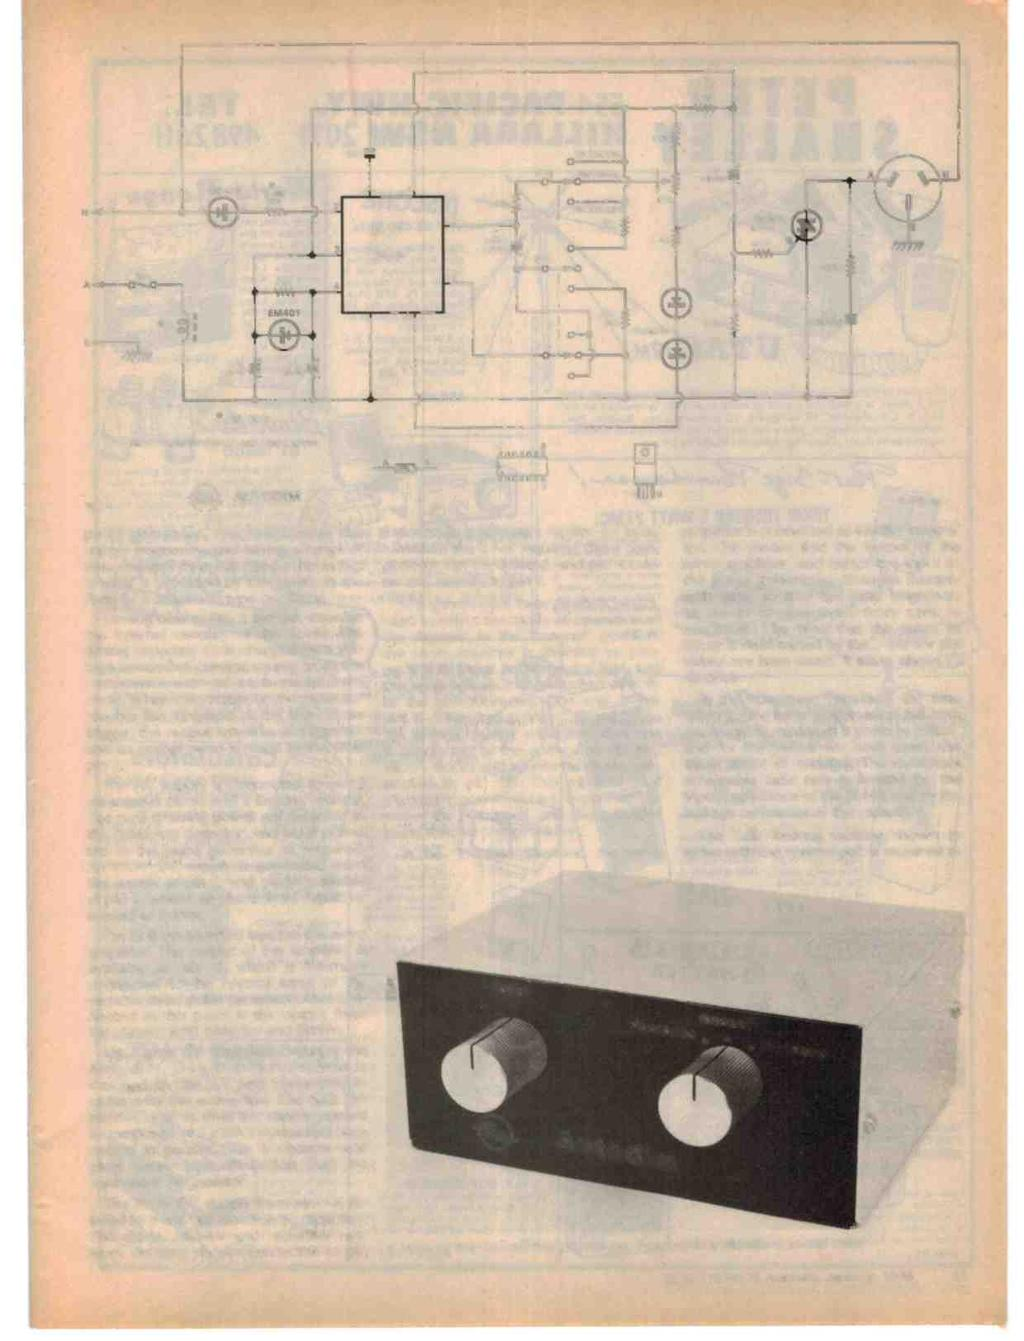 Australia ARTIFICIAL VISION SOON AUTOMATIC DIMMER